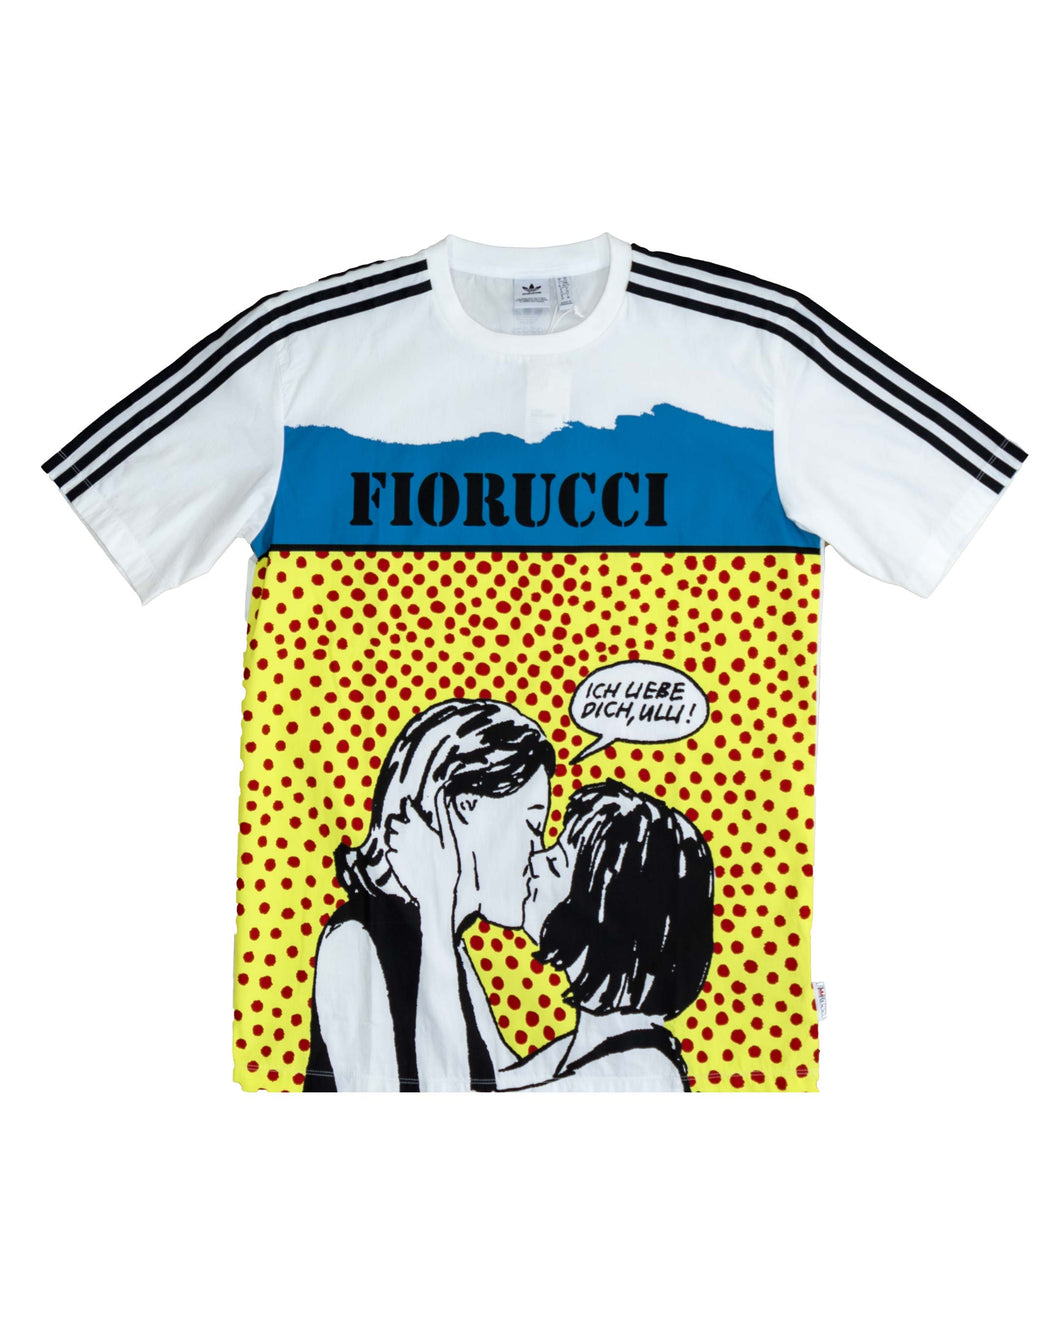 Adidas T Shirt Graphic White